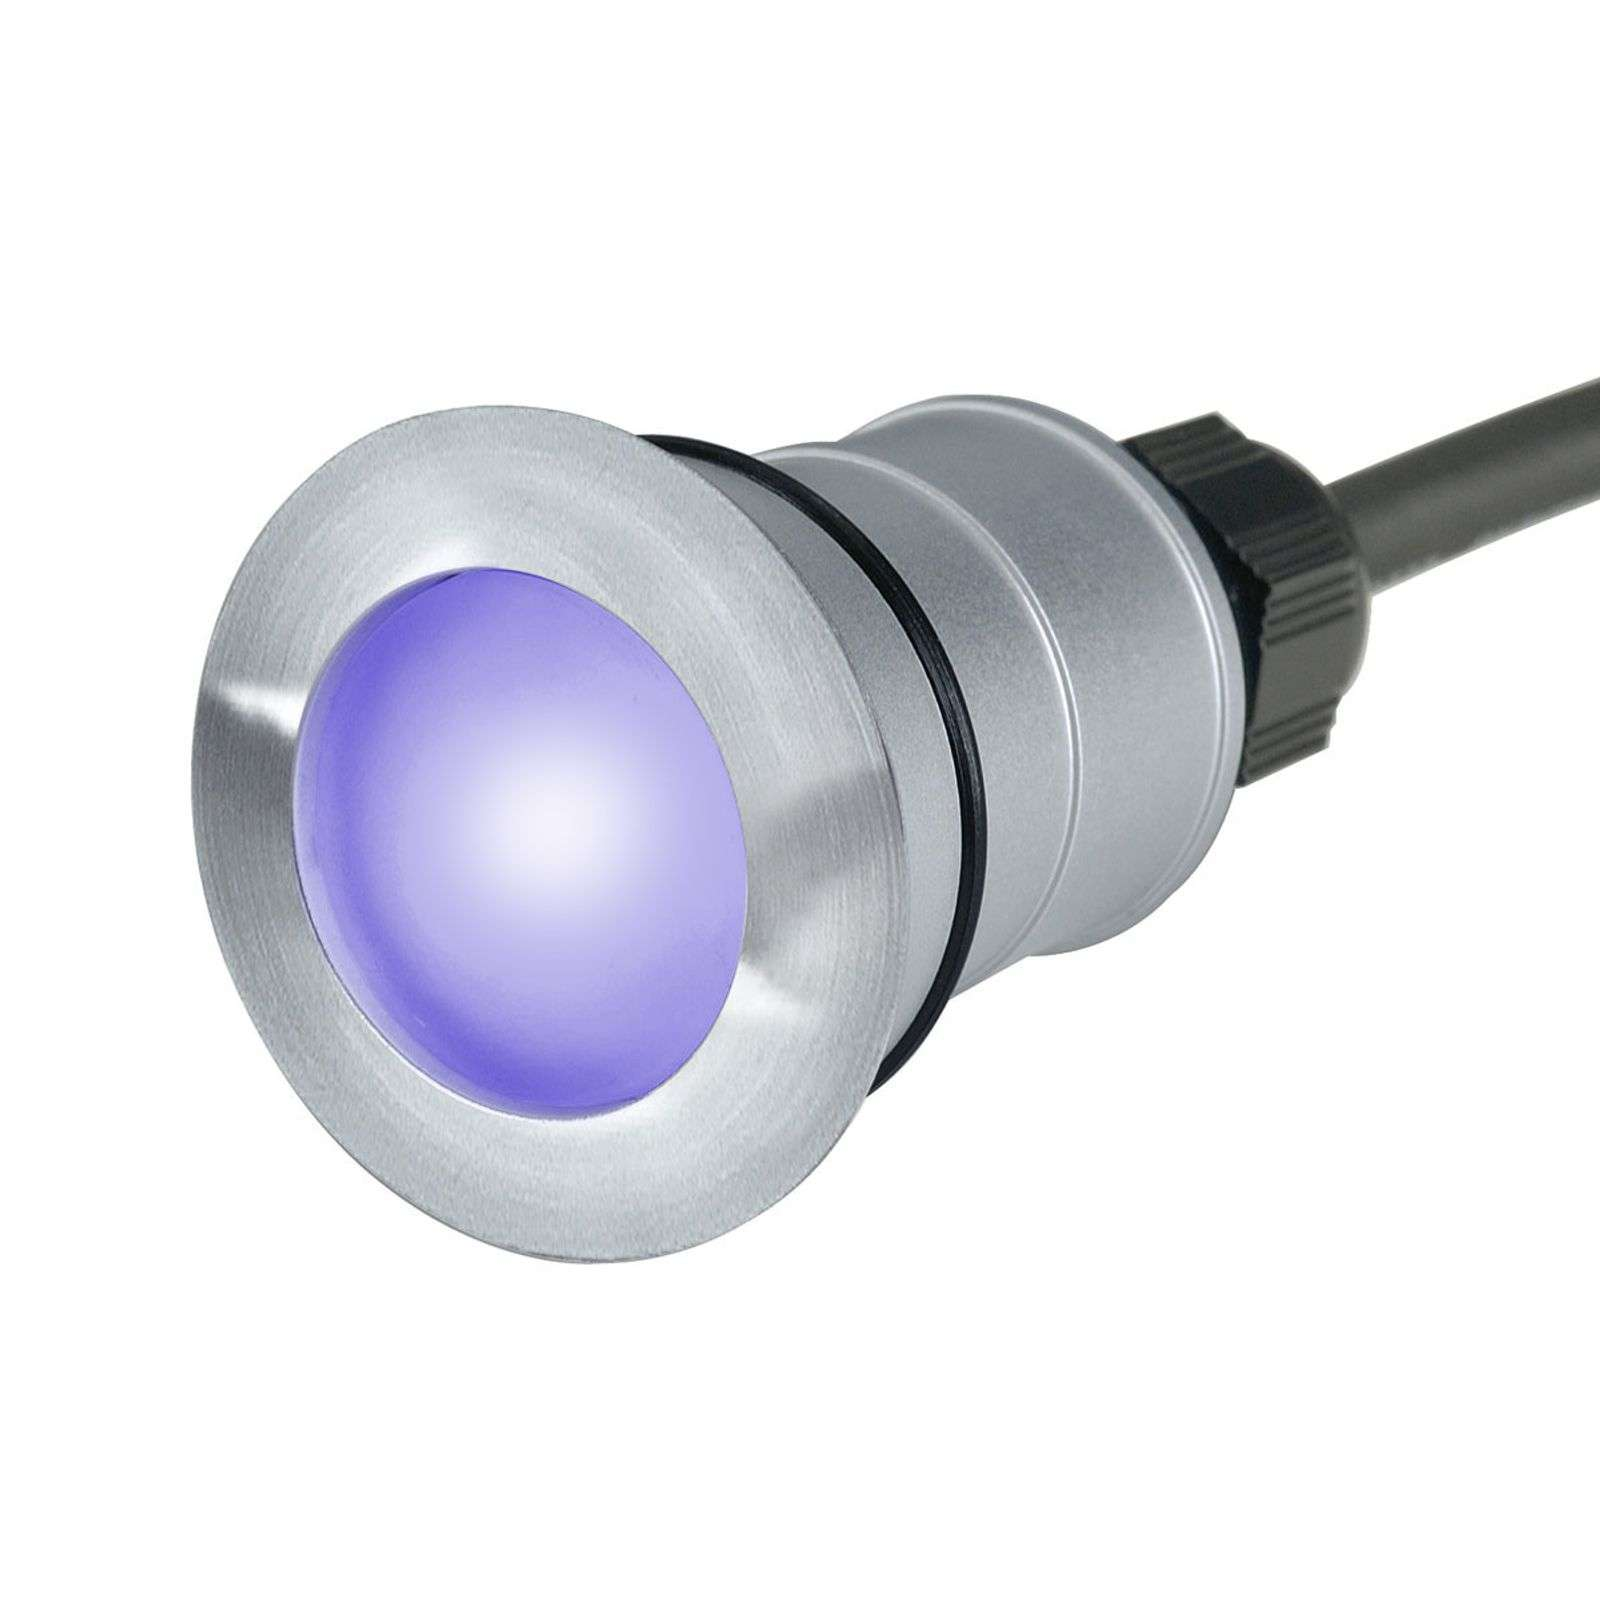 Spot encastrable au sol LED TRAIL-LITE ROUND bleu